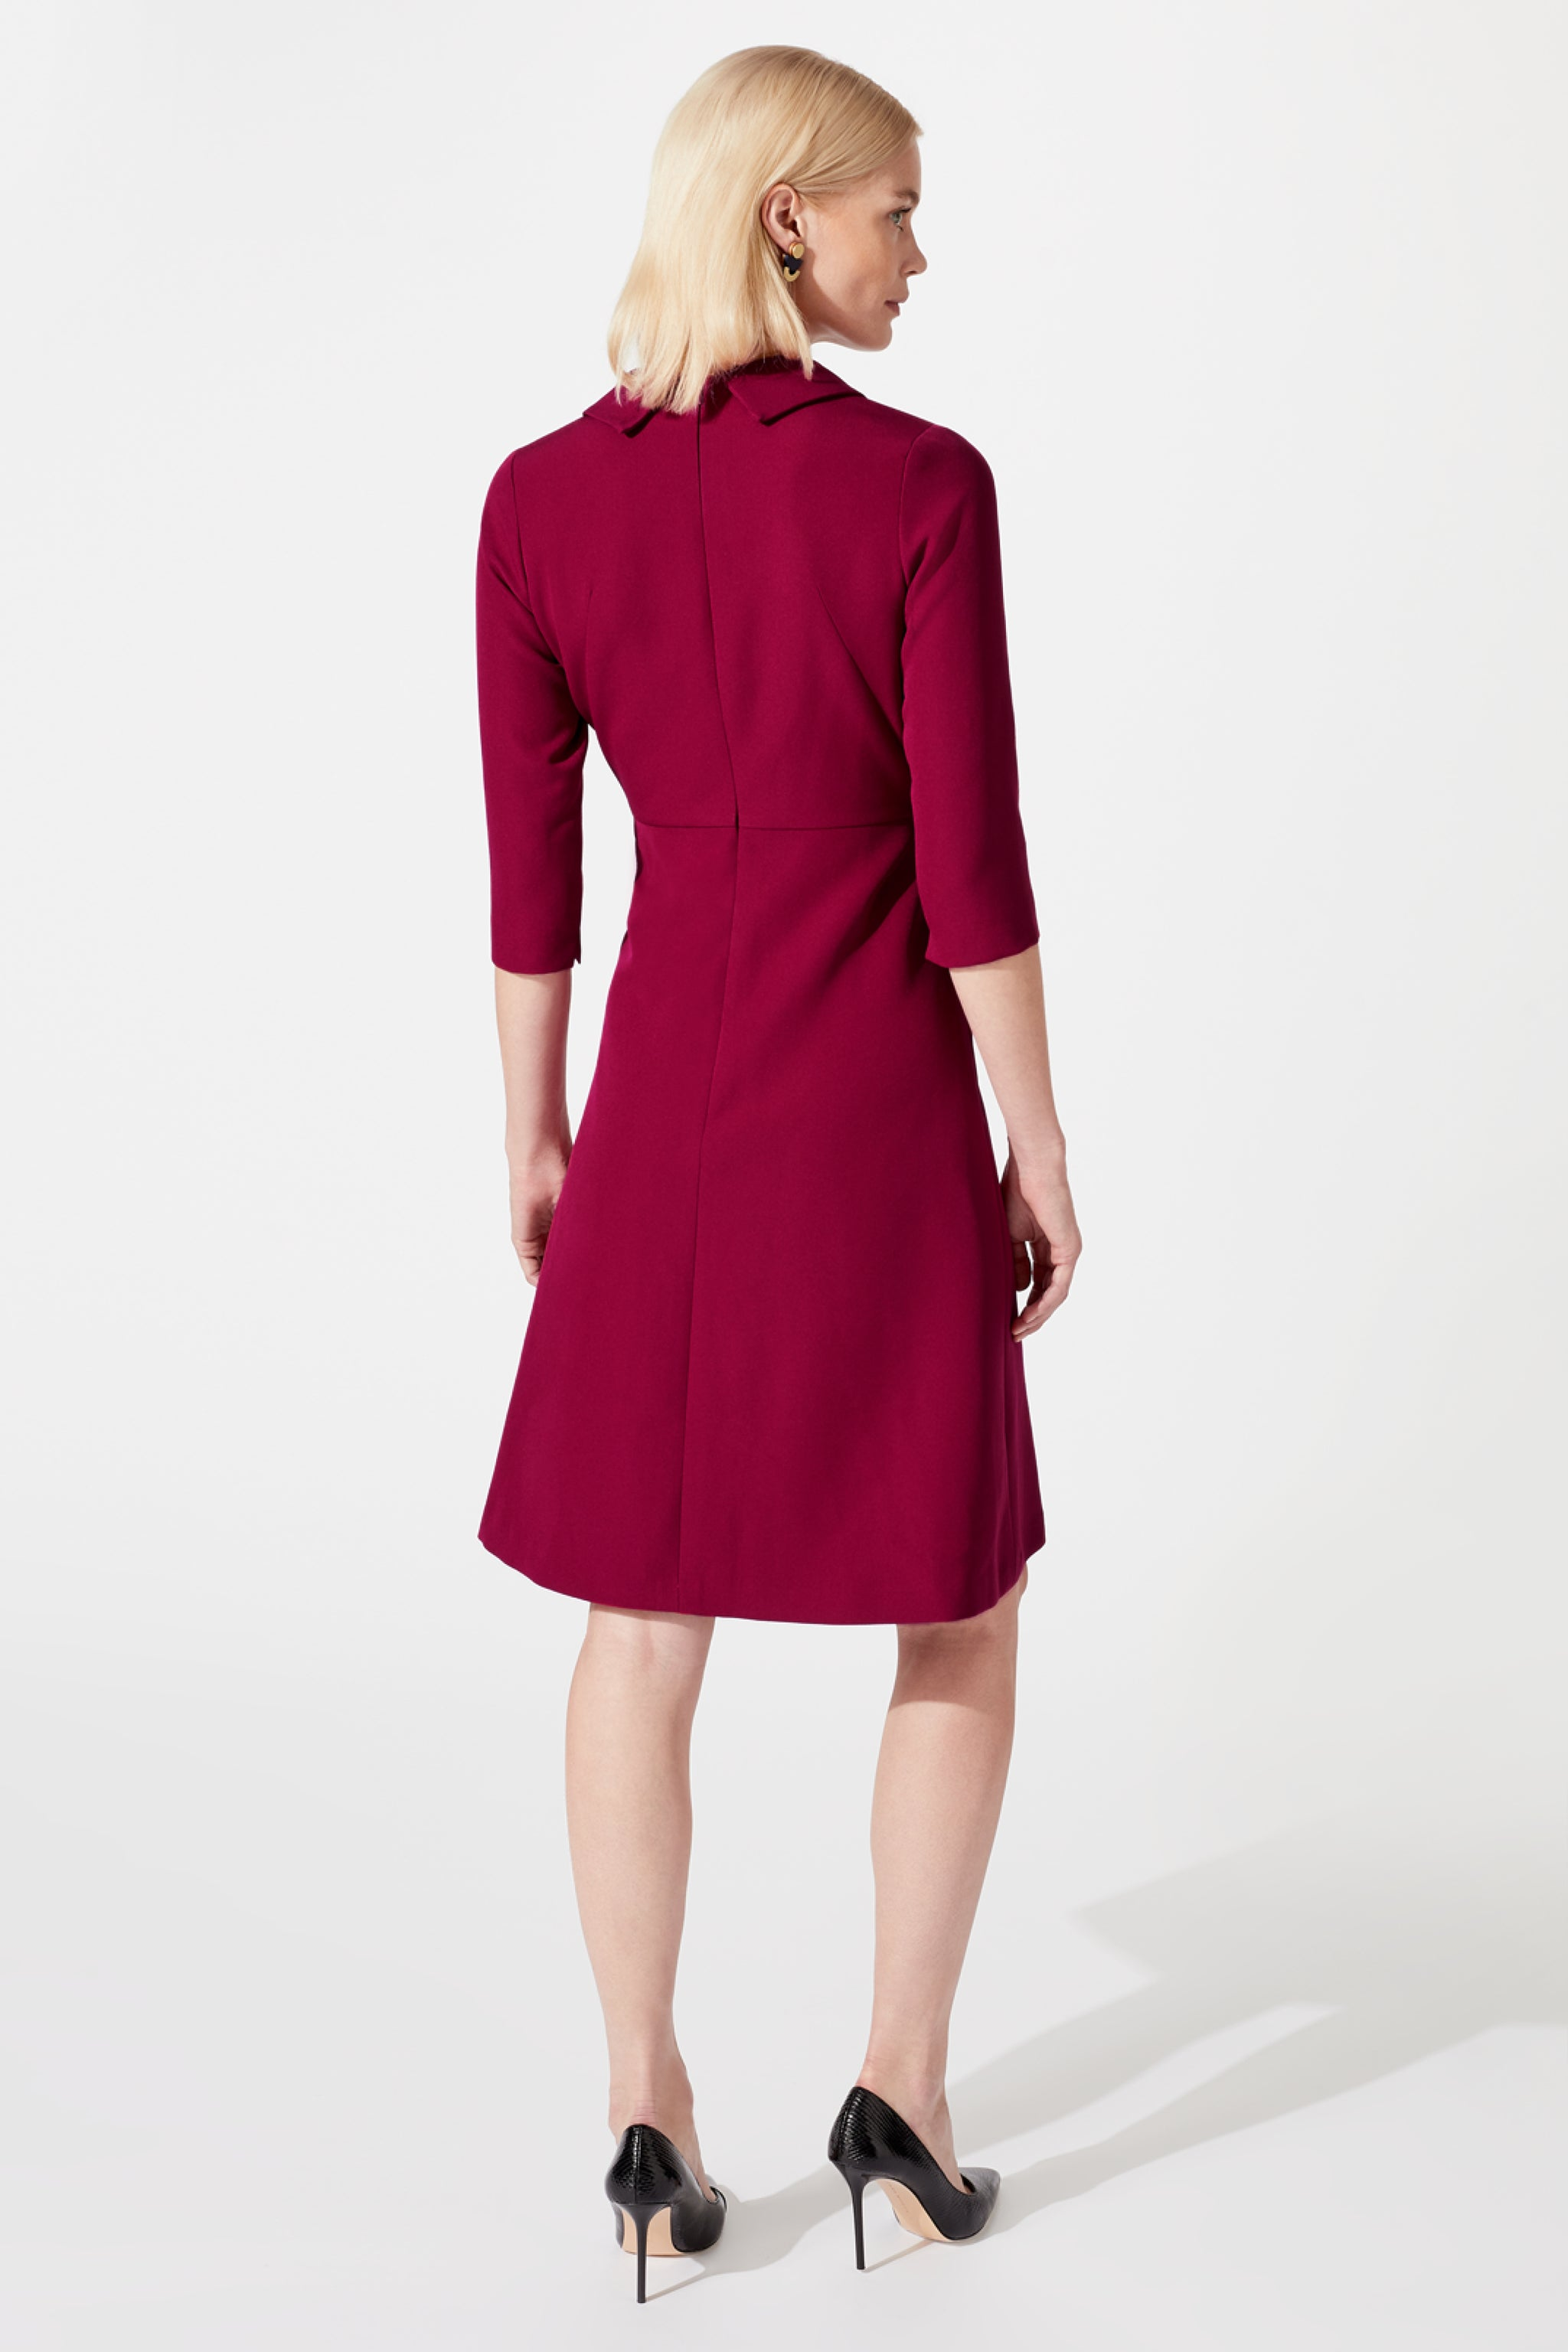 Farringdon Rosehip Dress